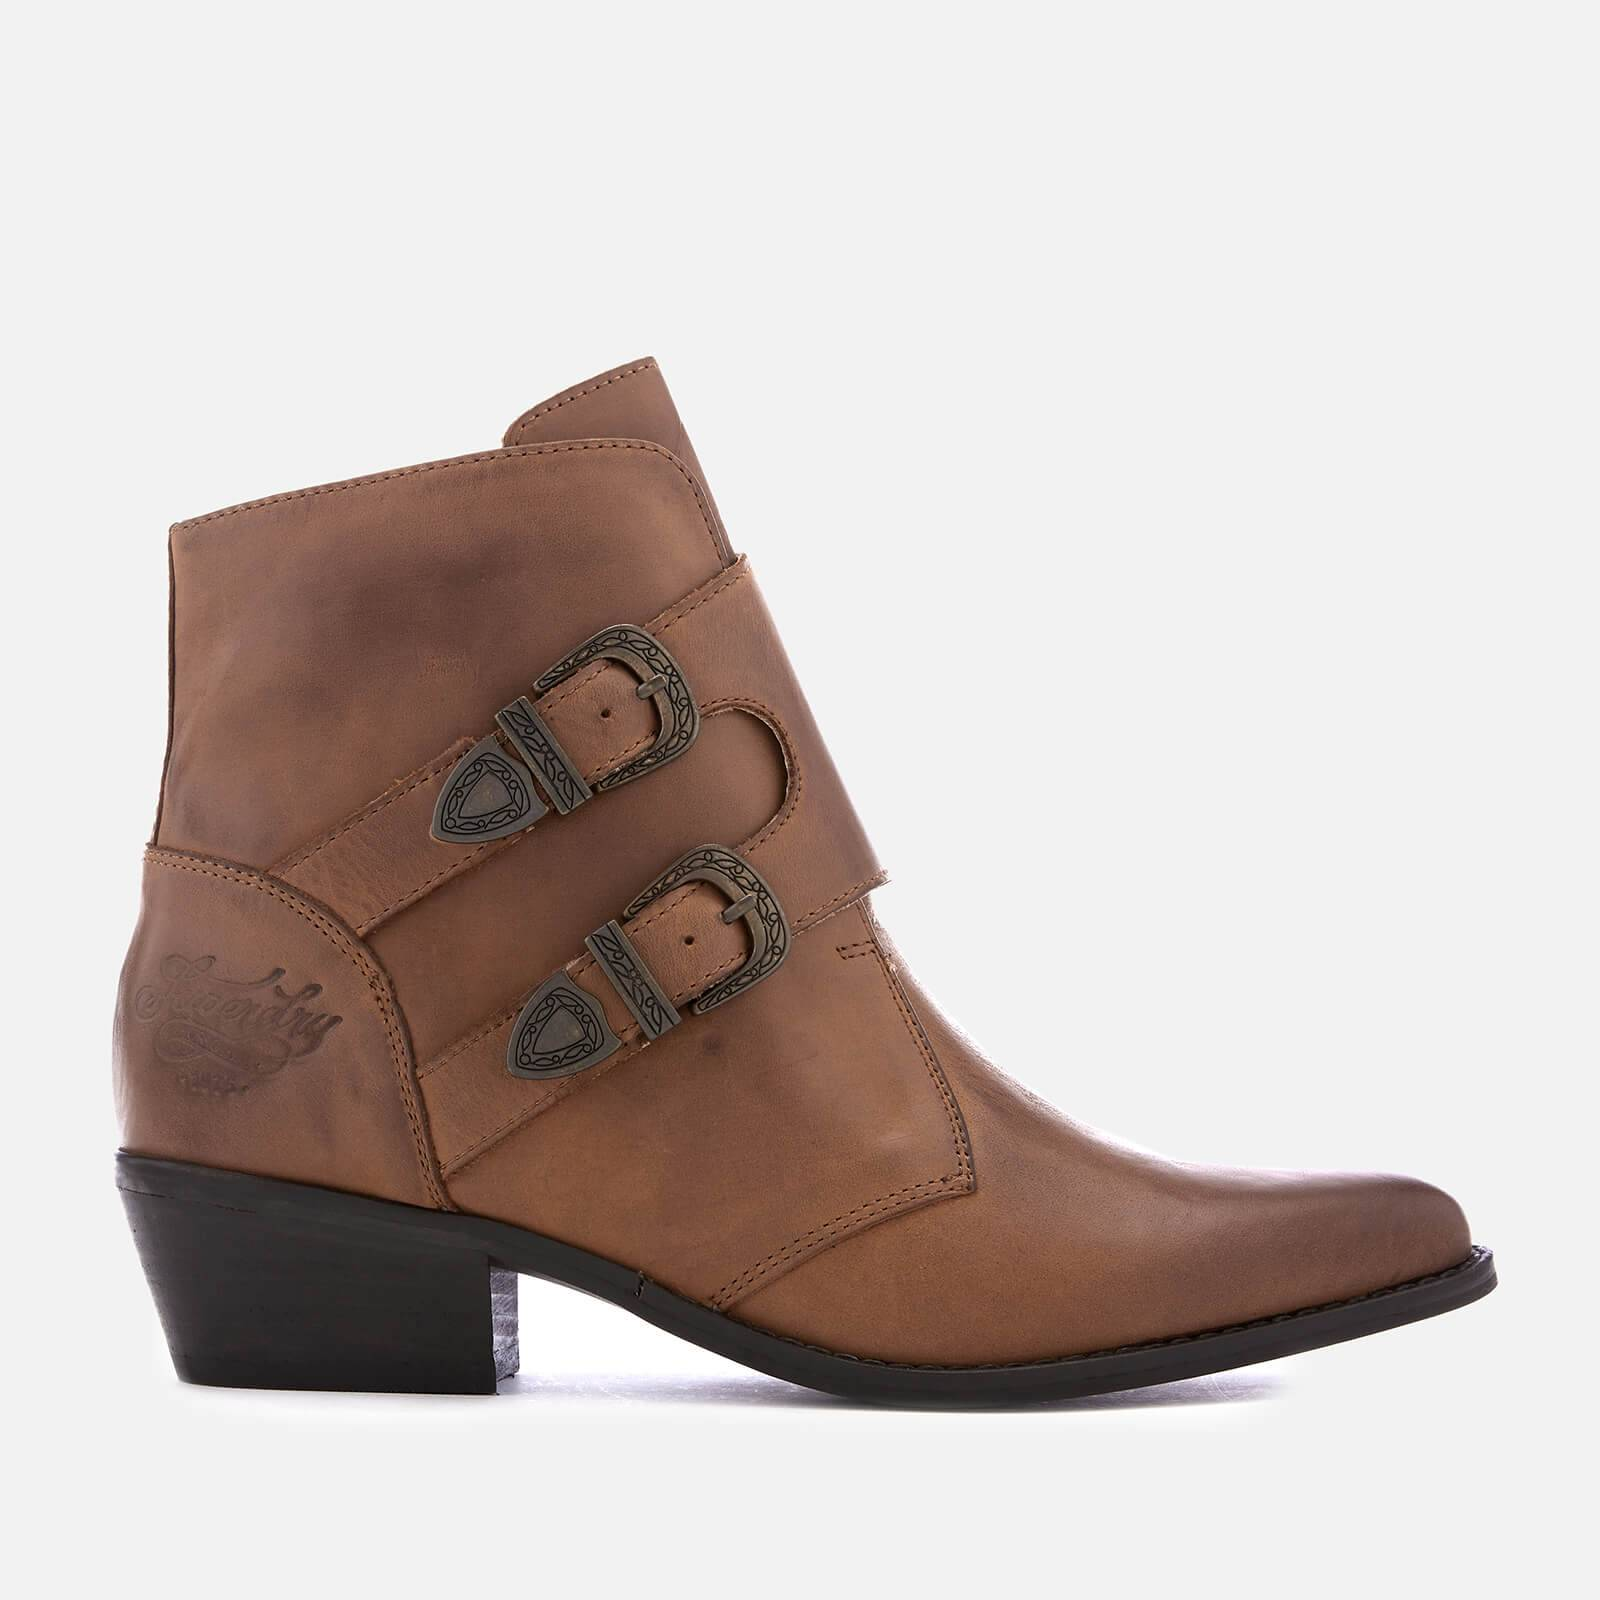 Superdry Women's Rodeo Monk Heeled Ankle Boots - Tan - UK 3 - Tan